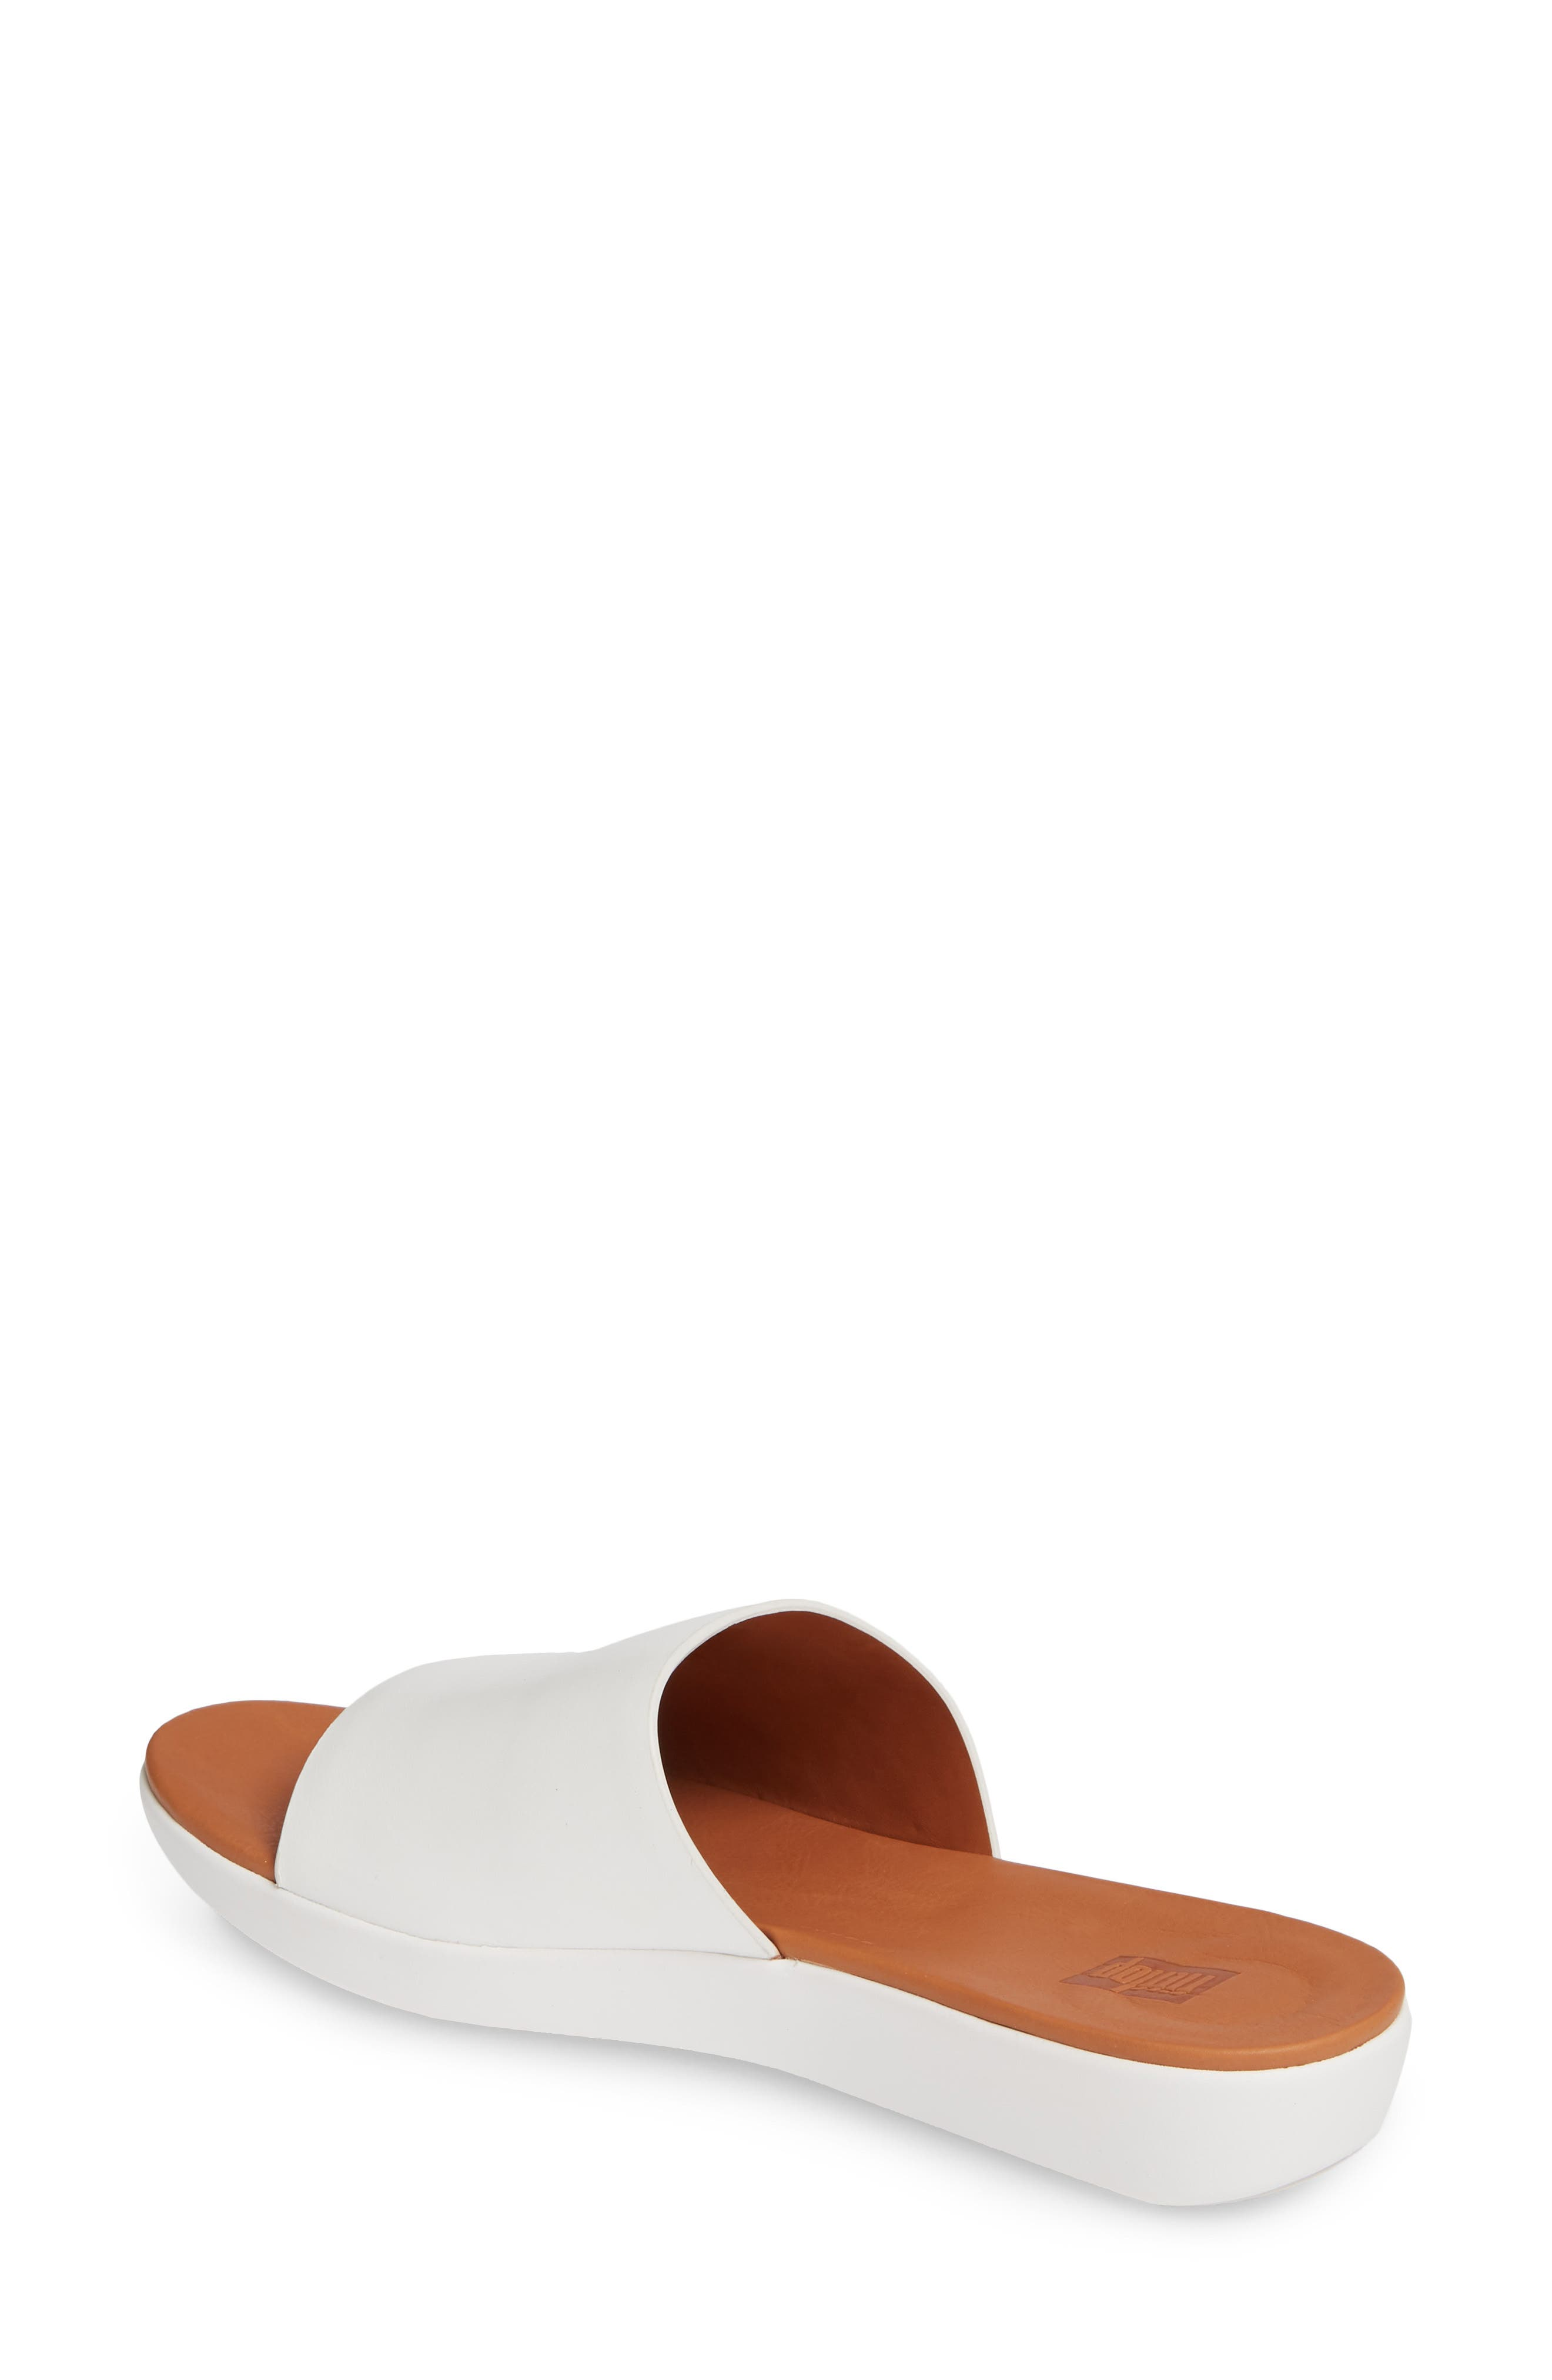 FITFLOP,                             Sola Sandal,                             Alternate thumbnail 2, color,                             URBAN WHITE LEATHER